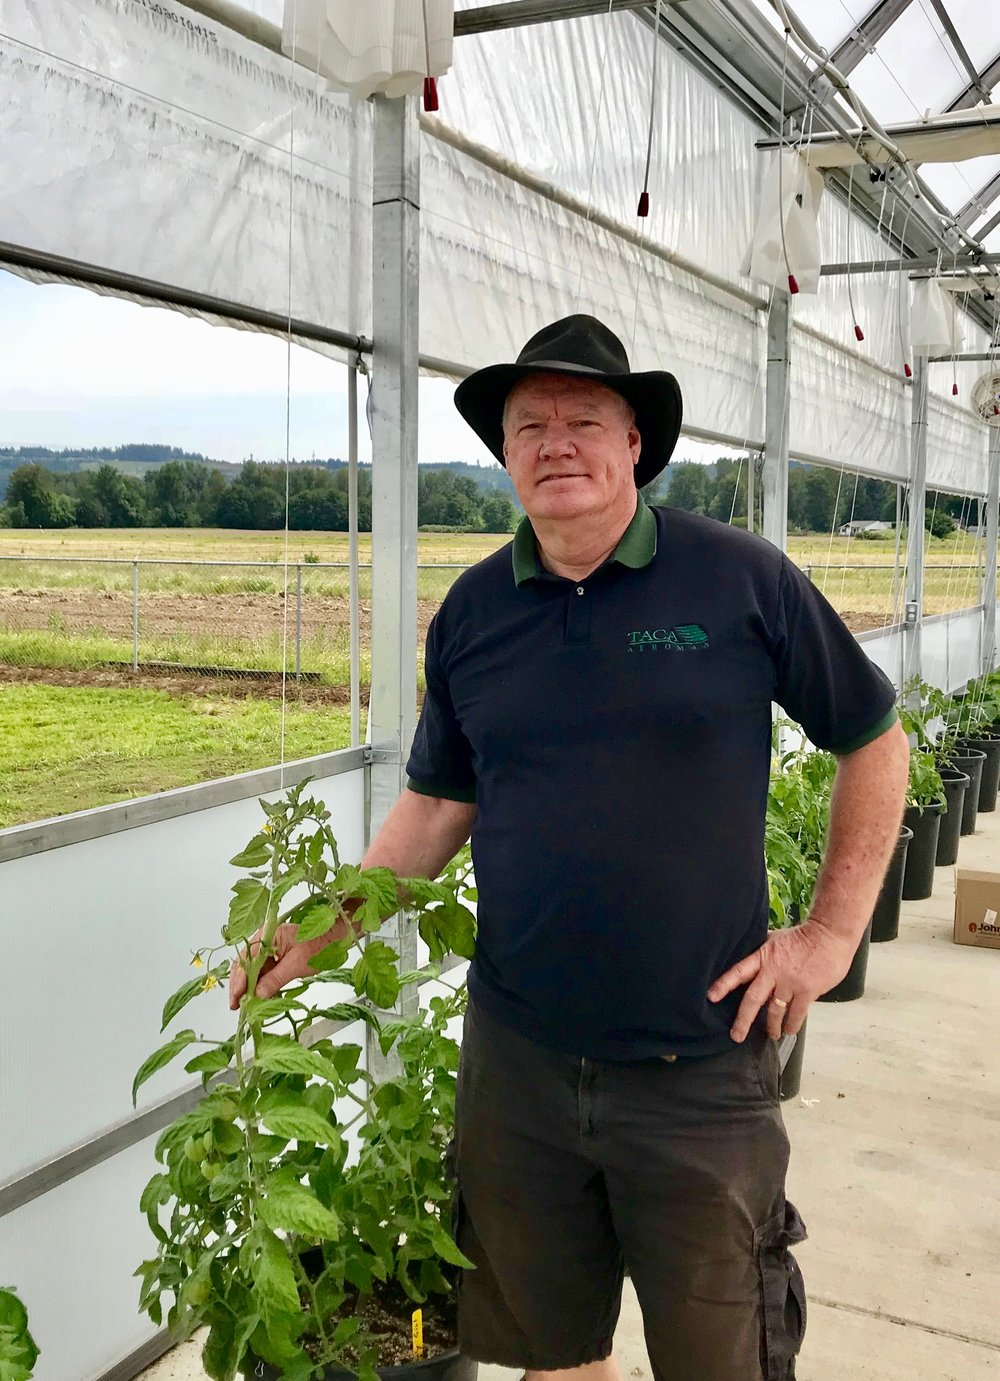 """June - DAVE HANSONDave Hanson joined our volunteer family, the day after he retired from Boeing. He has been a volunteer leader on many projects in our greenhouse. From planting tiny flowers, to lifting huge moss baskets, to experimenting with growing vegetables, Dave cheerfully does it all.Several years ago, Dave discovered Step By Step, when he helped volunteer at our annual Christmas party. He told us, """"While I was considering retiring, I knew I did not want to retire to 'nothing'. I heard Step By Step had begun the process of purchasing the former Van Lierop Bulb Farm site. I have farmed and been an avid gardener for many years. When Krista shared her vision for the property, to provide jobs and job training to help mothers, God immediately laid it on my heart that this could be a perfect fit for me. Krista loves the idea of doing some mini-farming on the property, we now have a gorgeous greenhouse, and I am all in!And, we are so happy to have you on our team, Dave! Thank you!"""